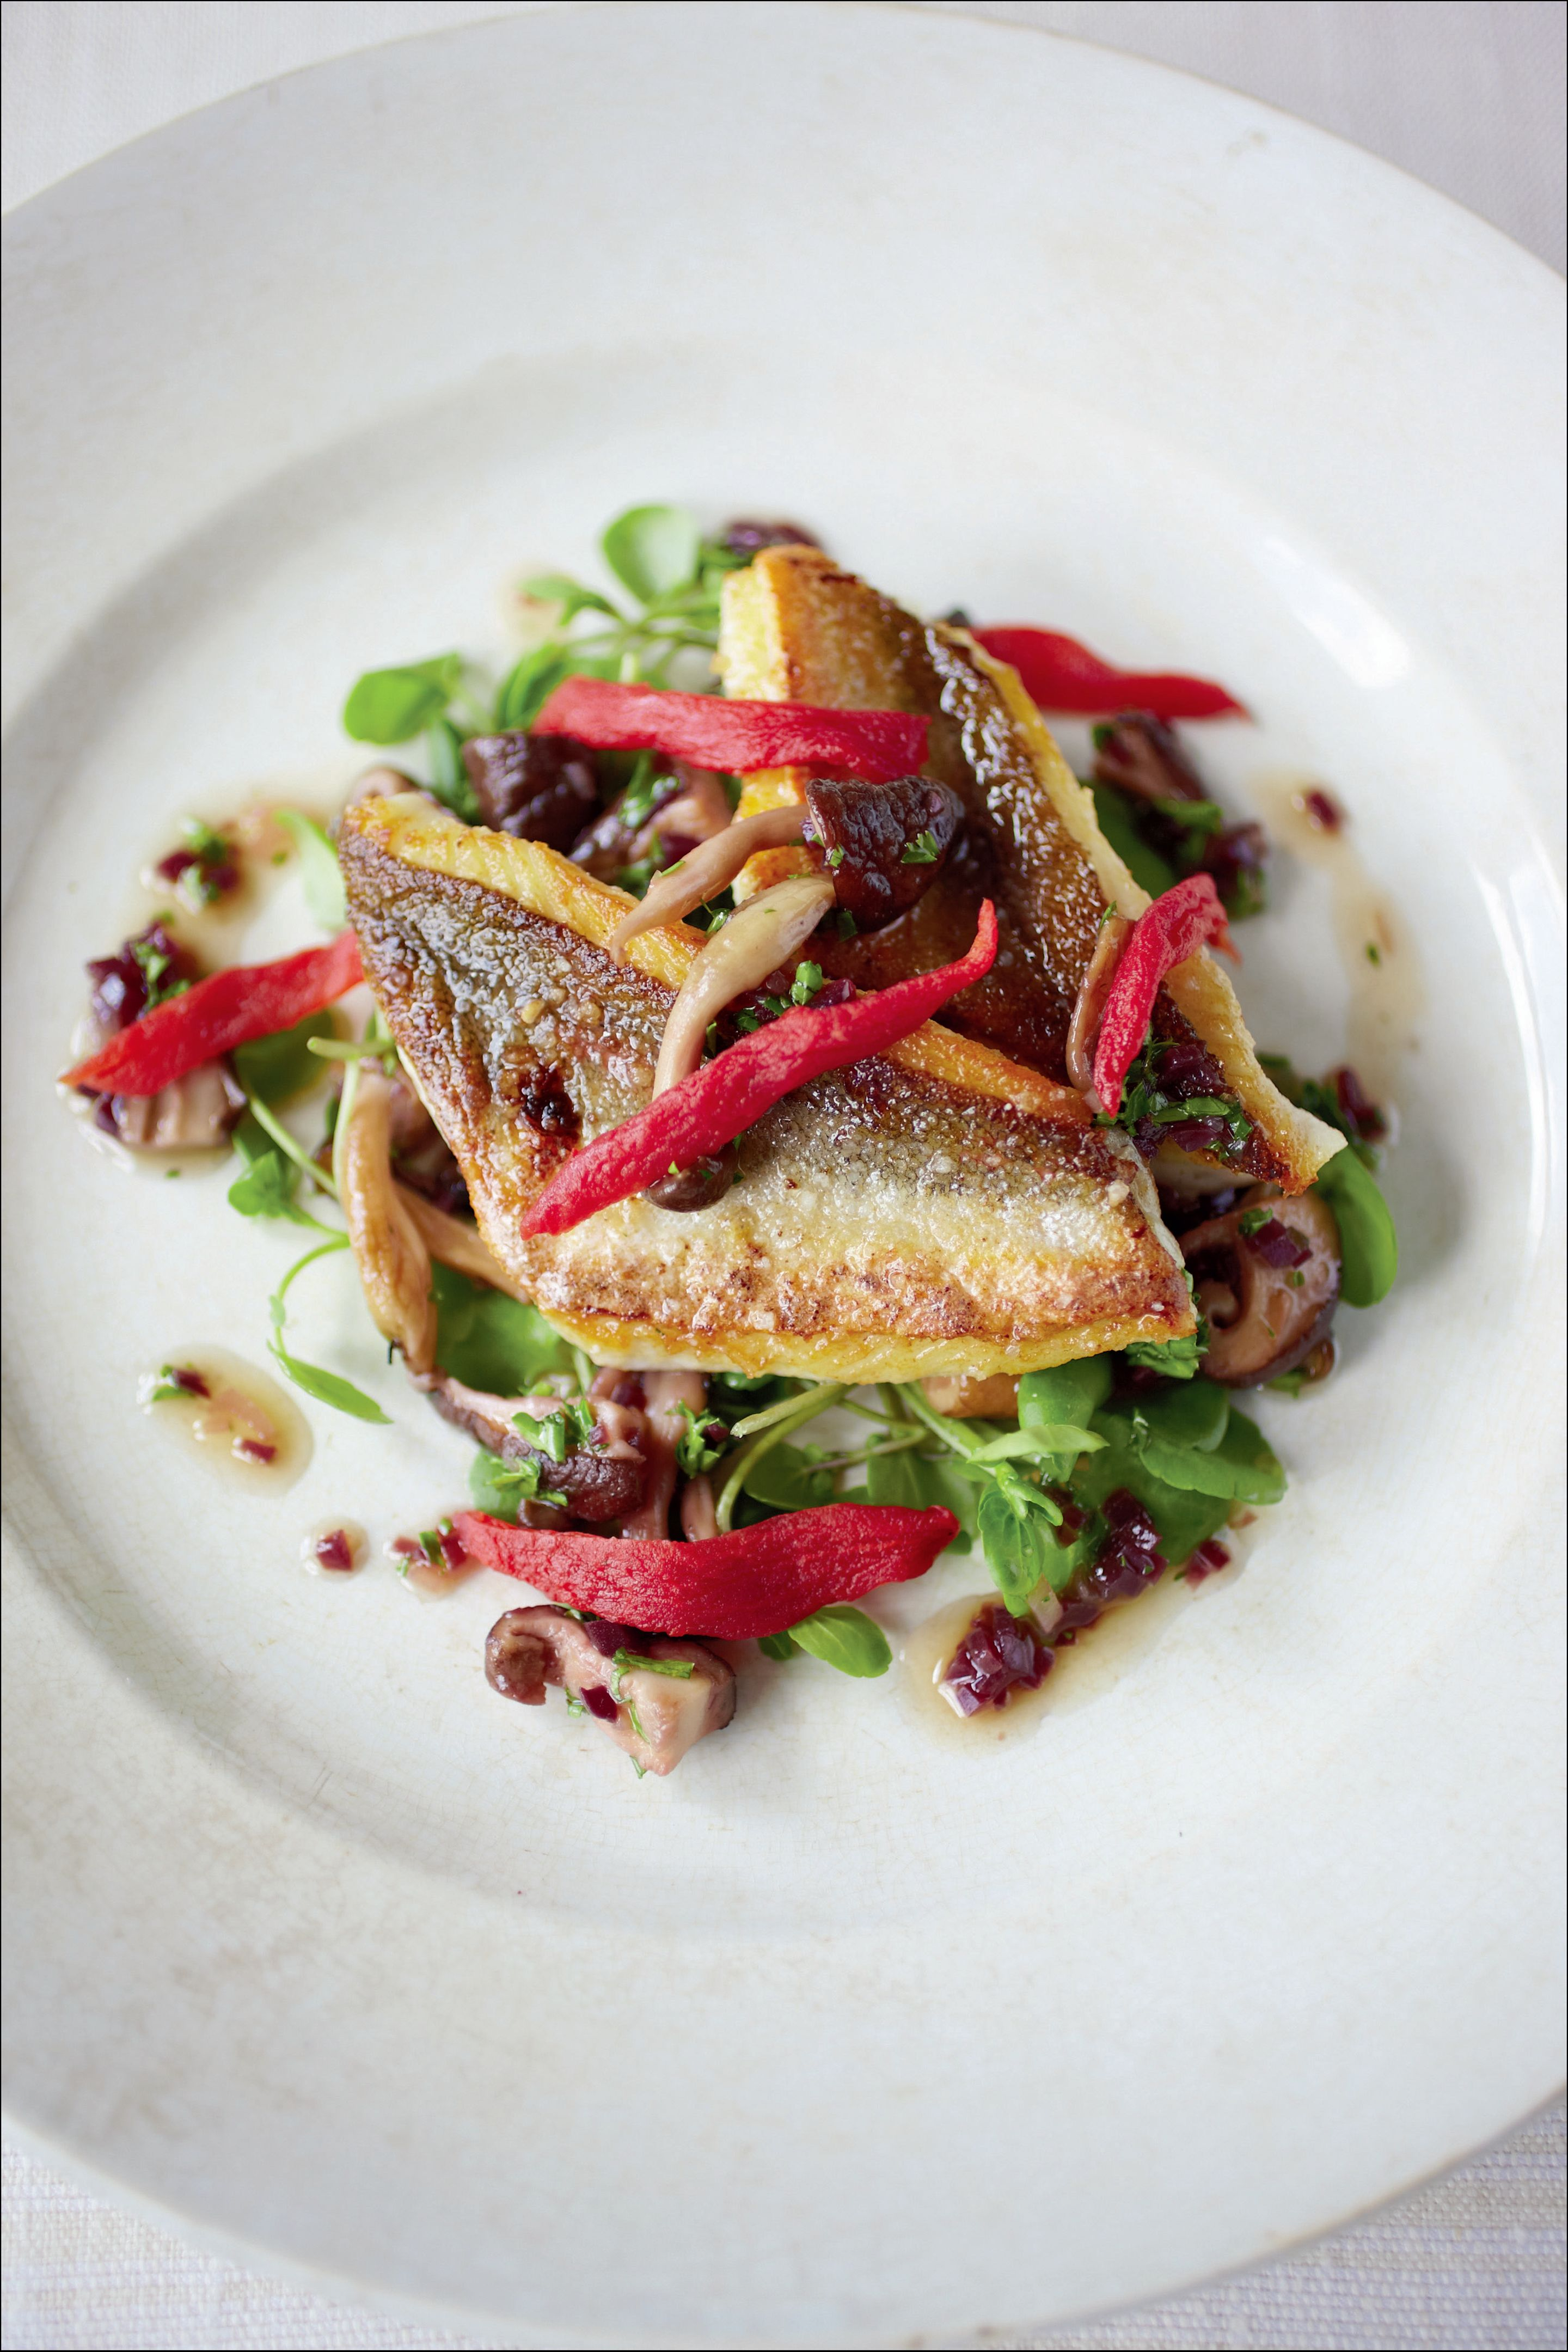 Red gurnard with mushrooms, garlic, parsley and oven-dried tomatoes